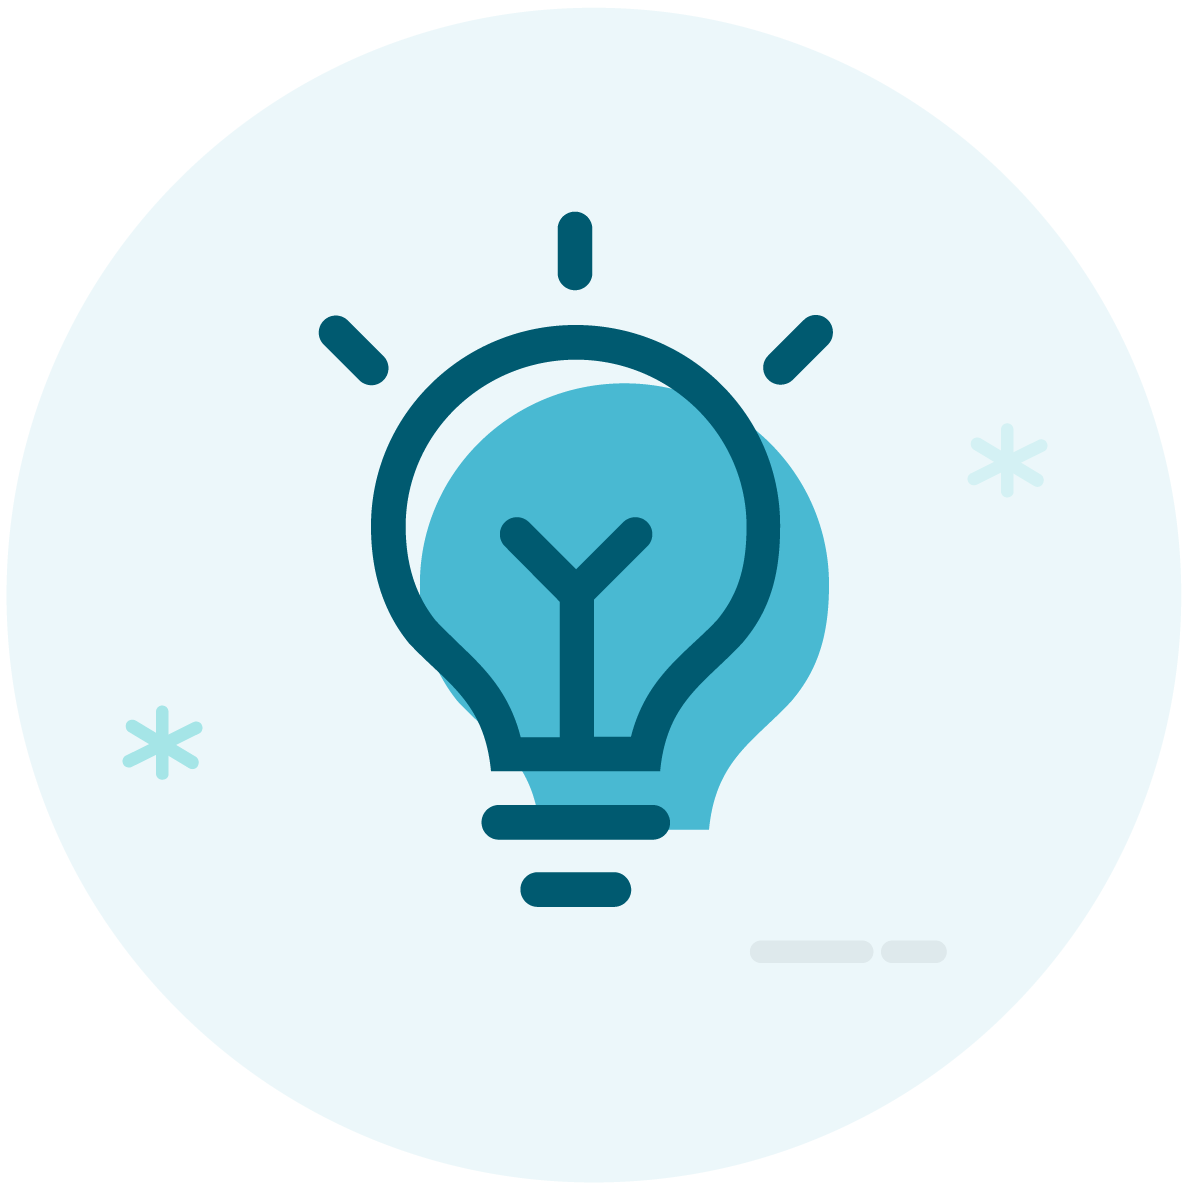 Become a Go-To Expert. Image contents: Outline of a light bulb.